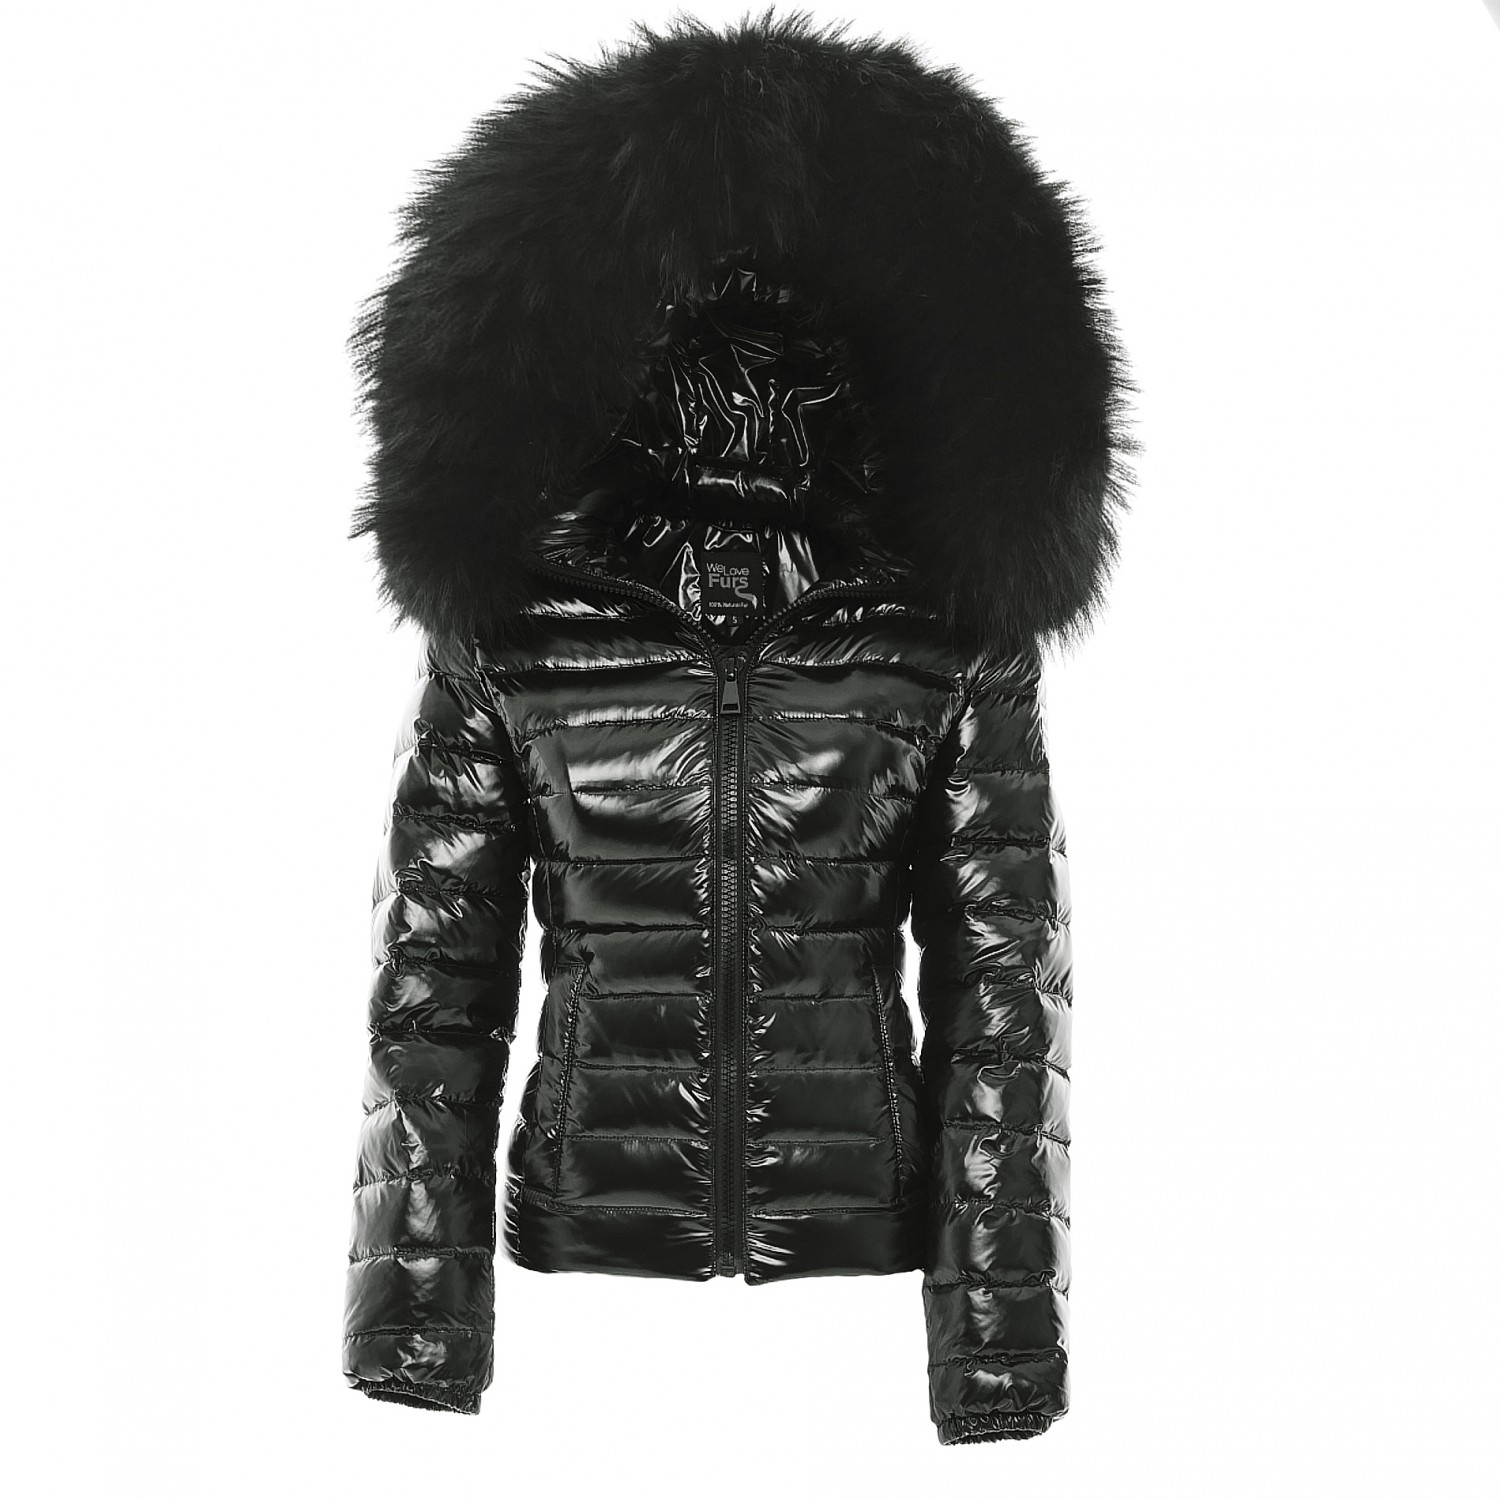 Glossy Pufferjacket with Fur Glossia